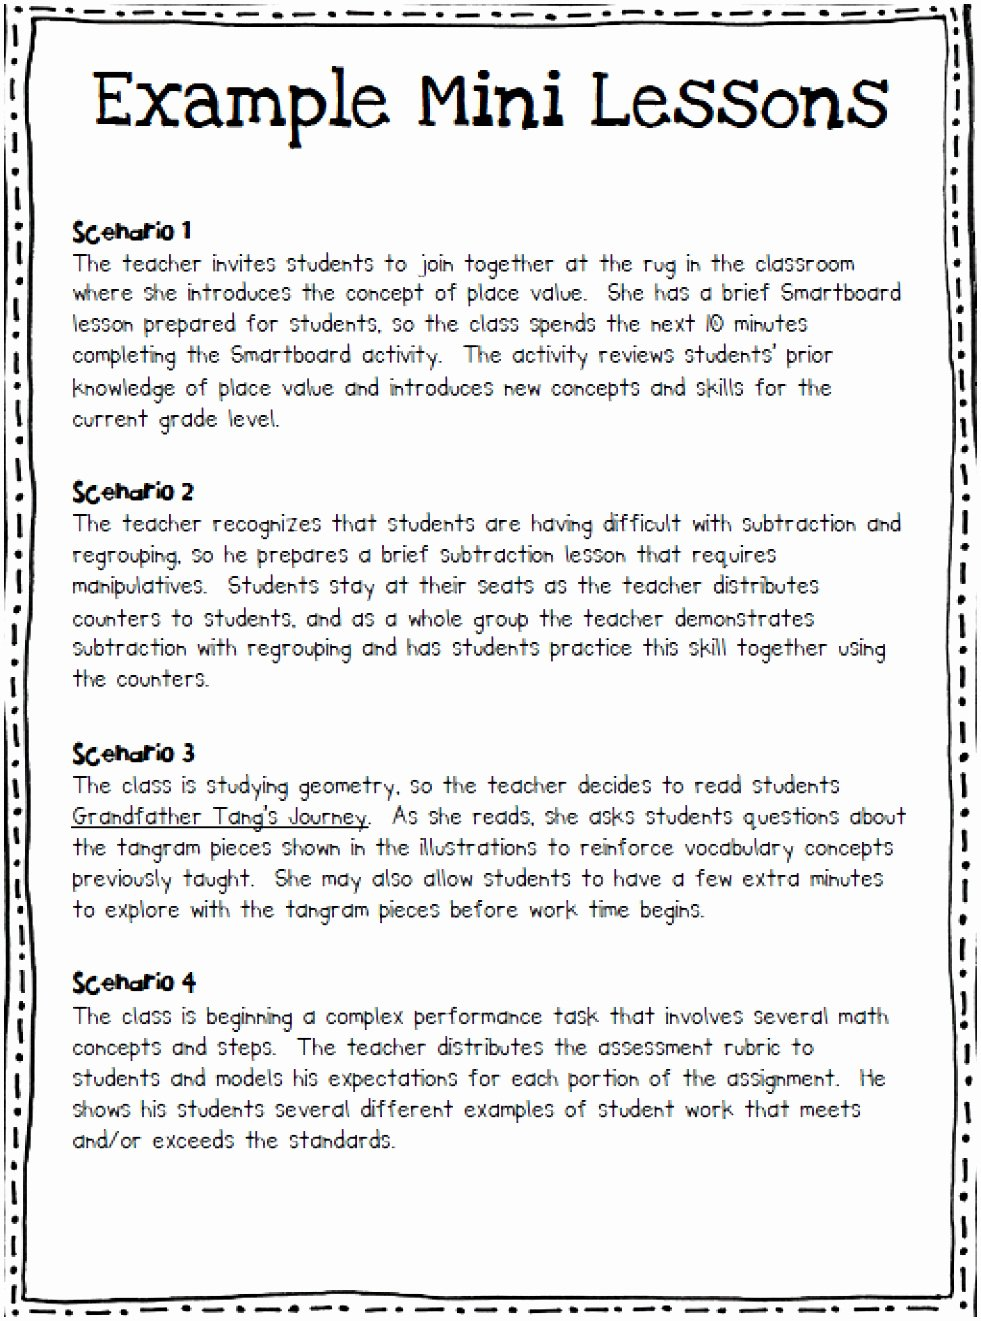 Workshop Model Lesson Plan Template Inspirational 10 Workshop Model Lesson Plan Template Taaoi